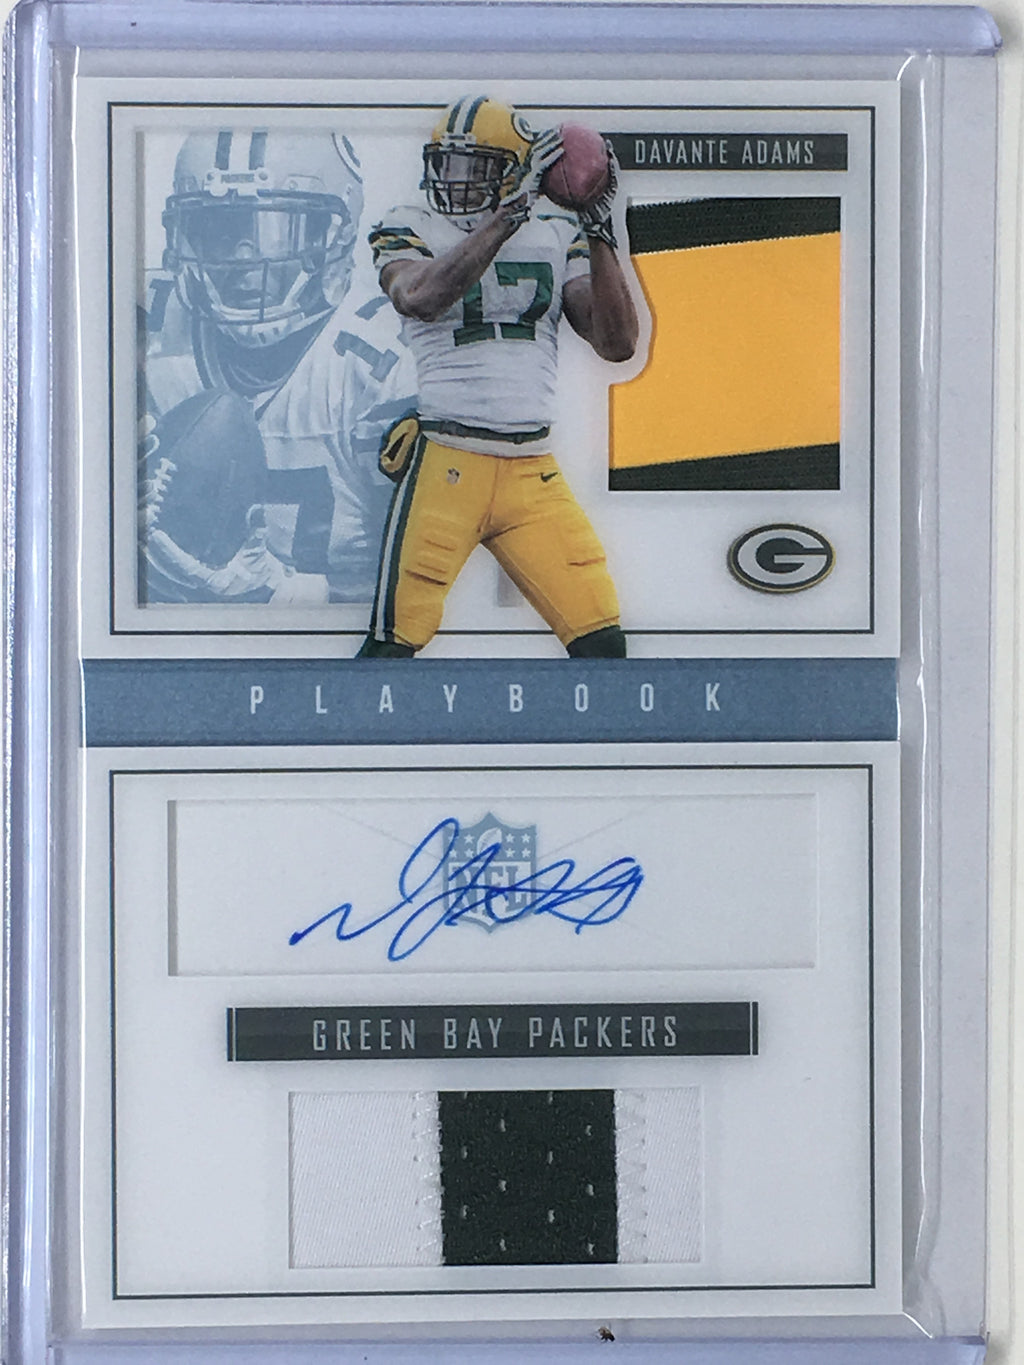 2015 Playbook DAVANTE ADAMS Dual Patch RC Auto Book 7/15 - Cherry Collectables - 1